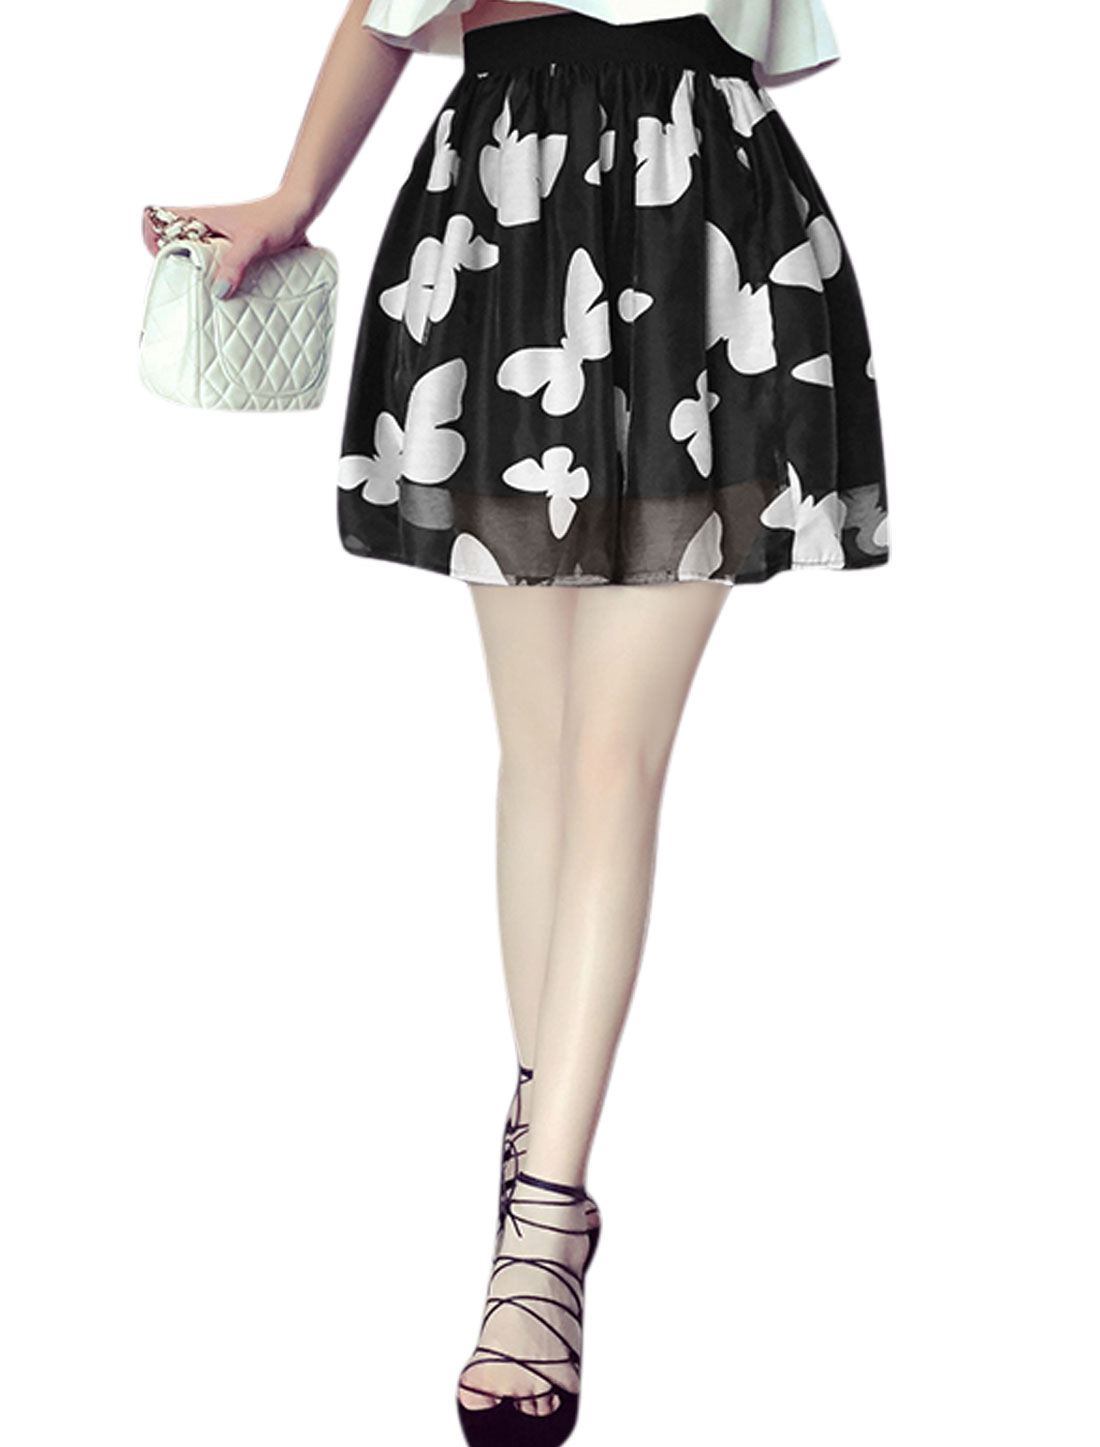 Lady Butterfly Design High Waist Band Fully Lined Skirt Black XS